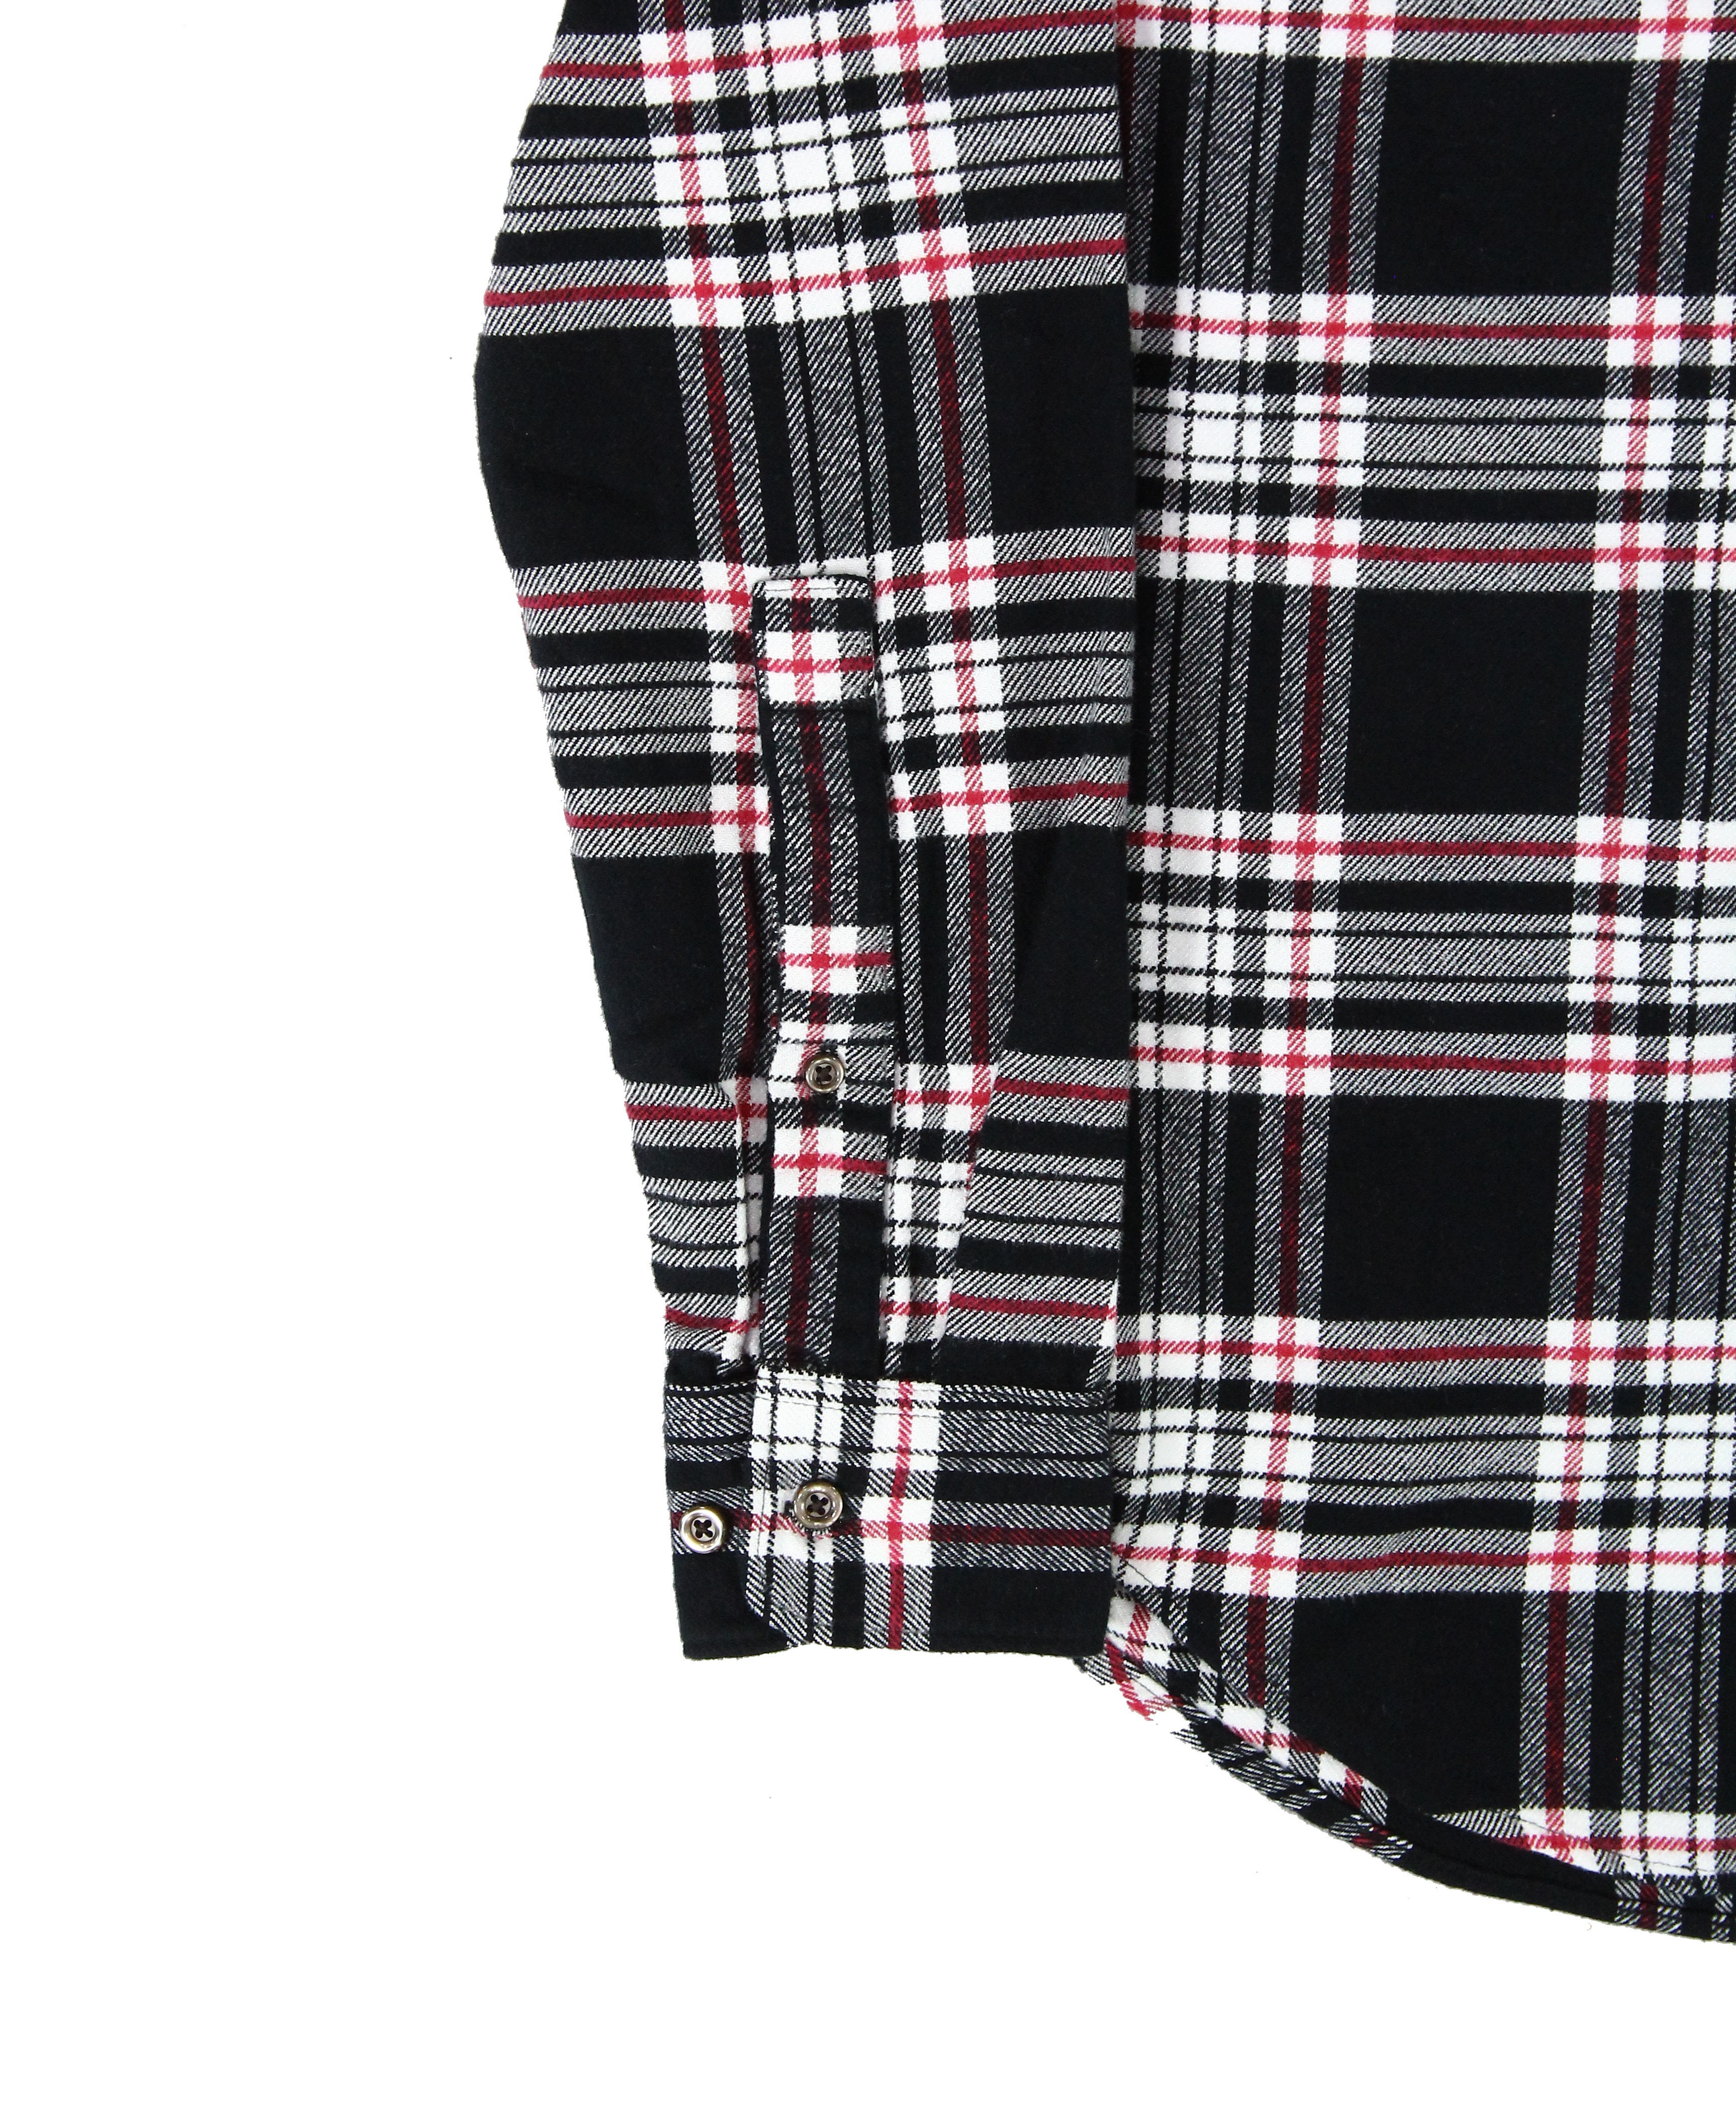 American-Apparel-NEW-Mens-Plaid-Flannel-Lumberjack-Classic-Fit-Button-Down-Shirt thumbnail 4